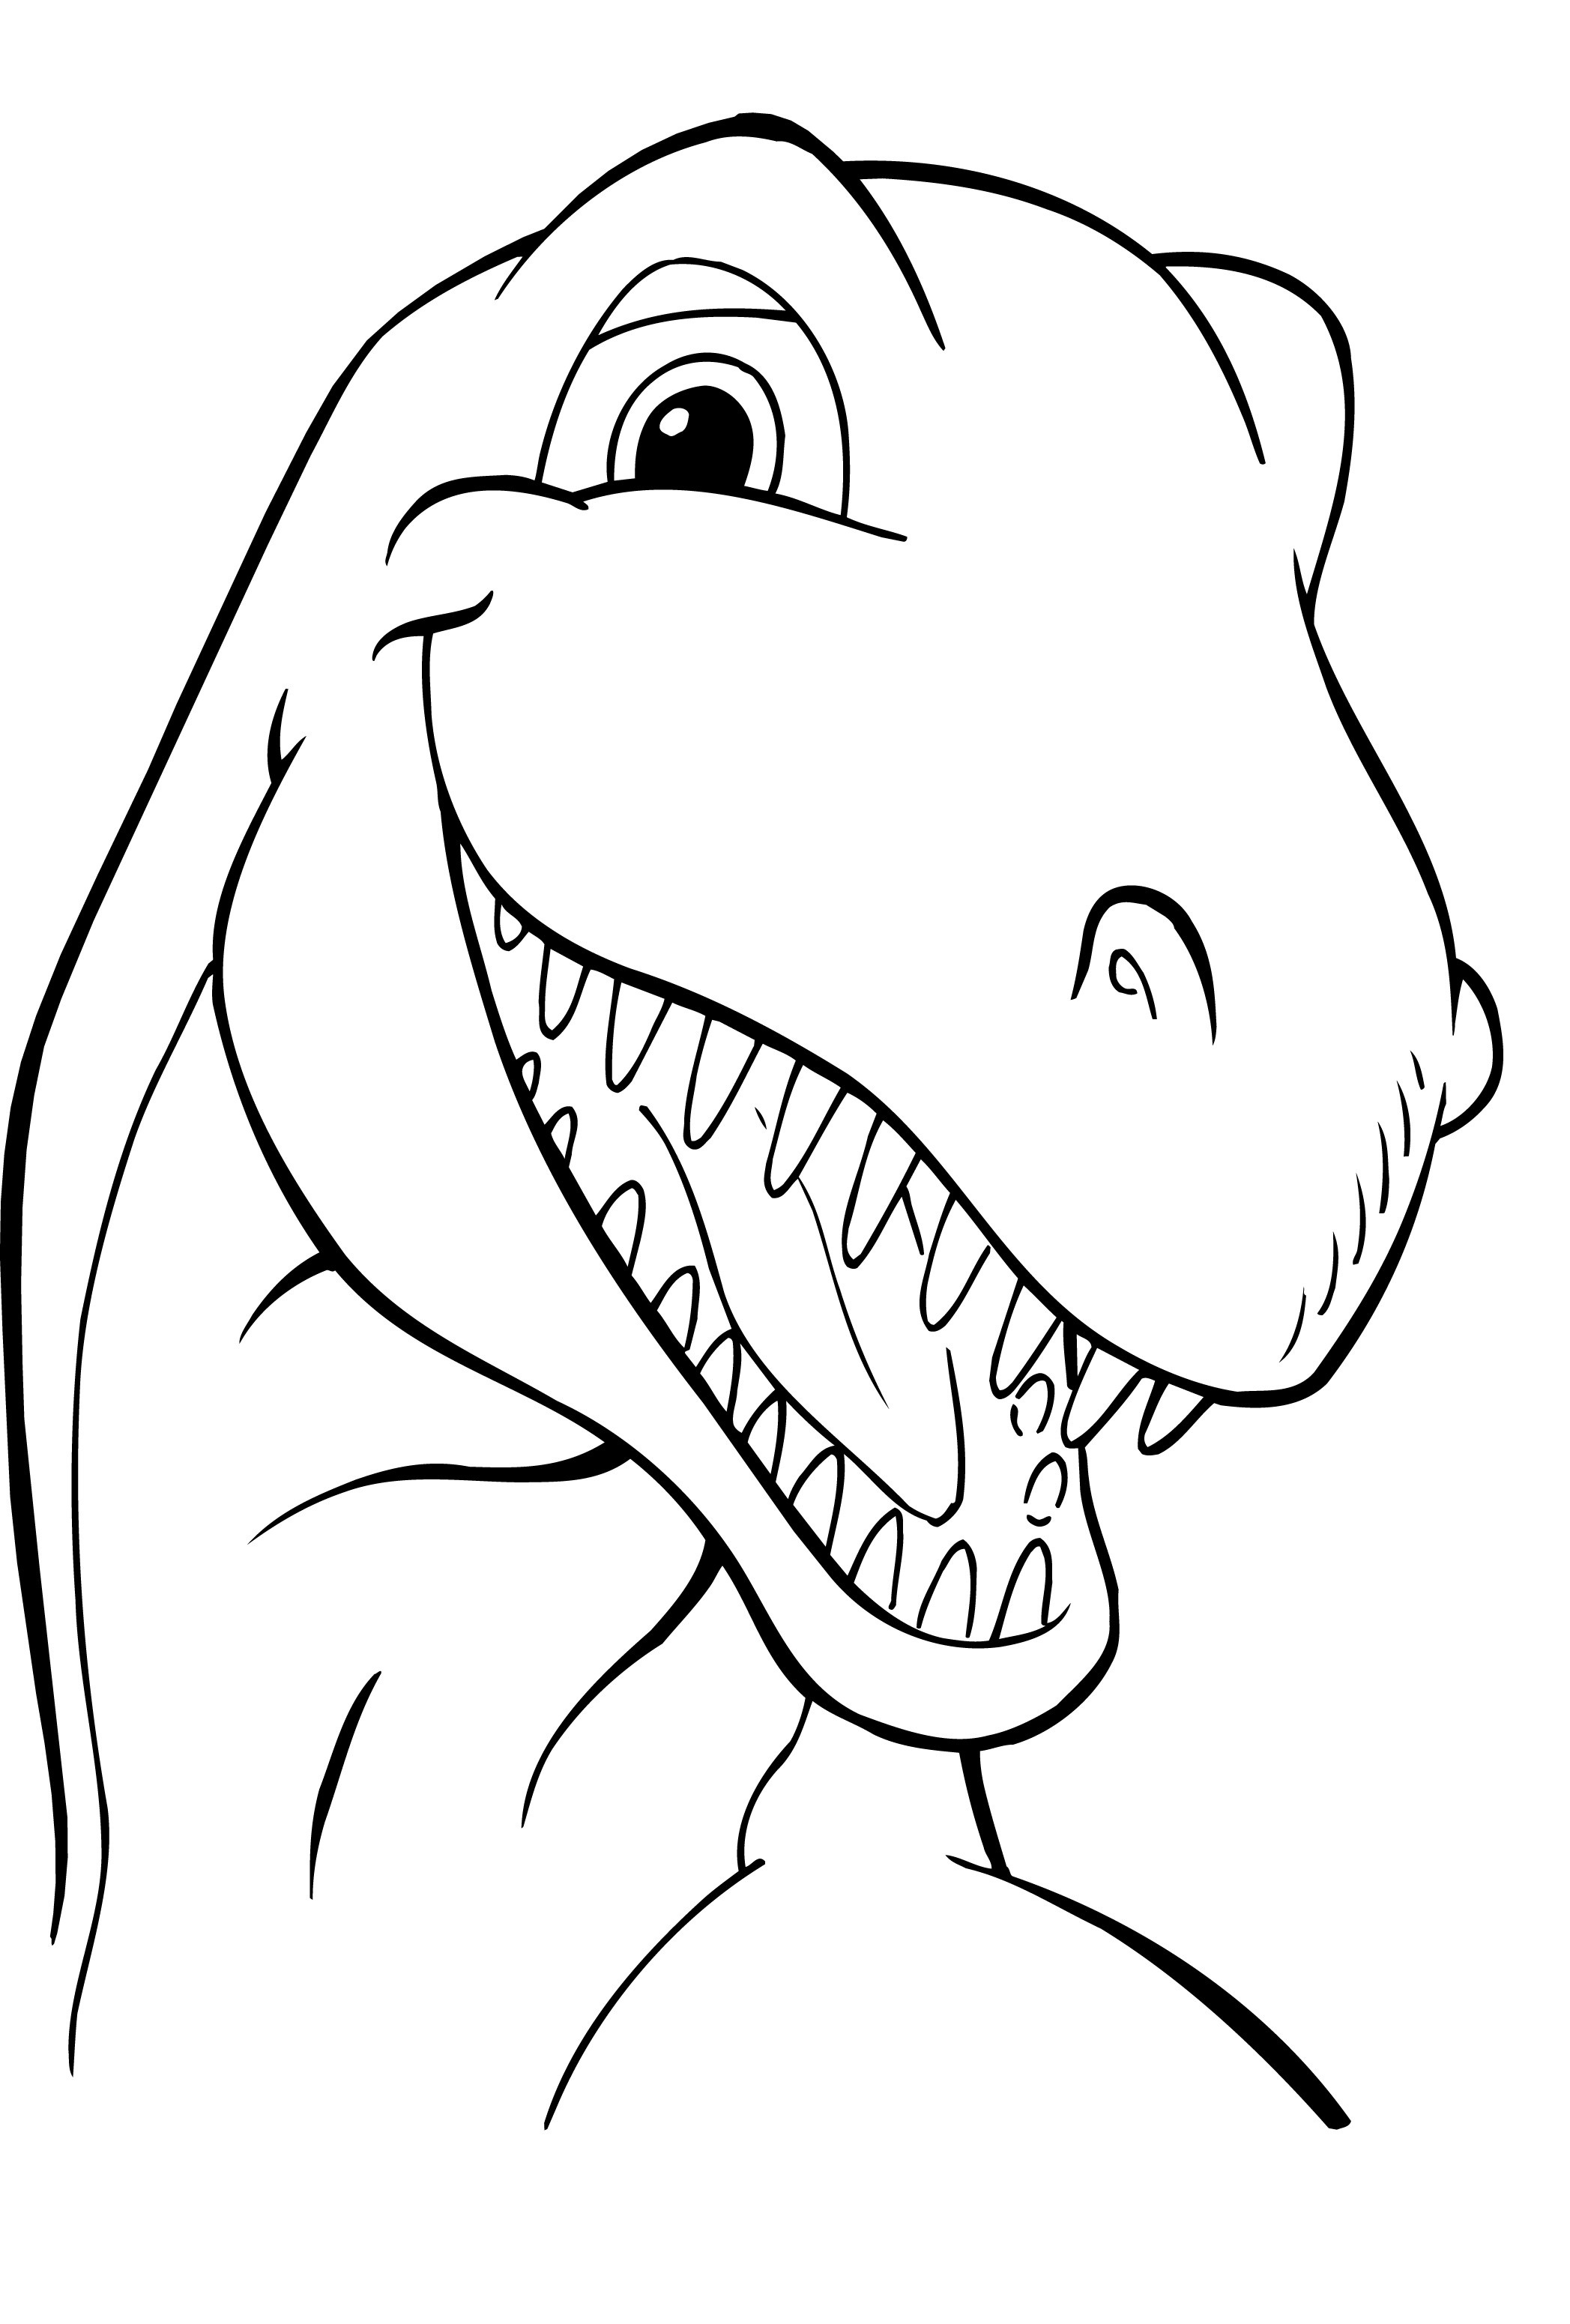 dinosaurs coloring pages printable dinosaurs to print triceratops dinosaurs kids coloring printable dinosaurs coloring pages